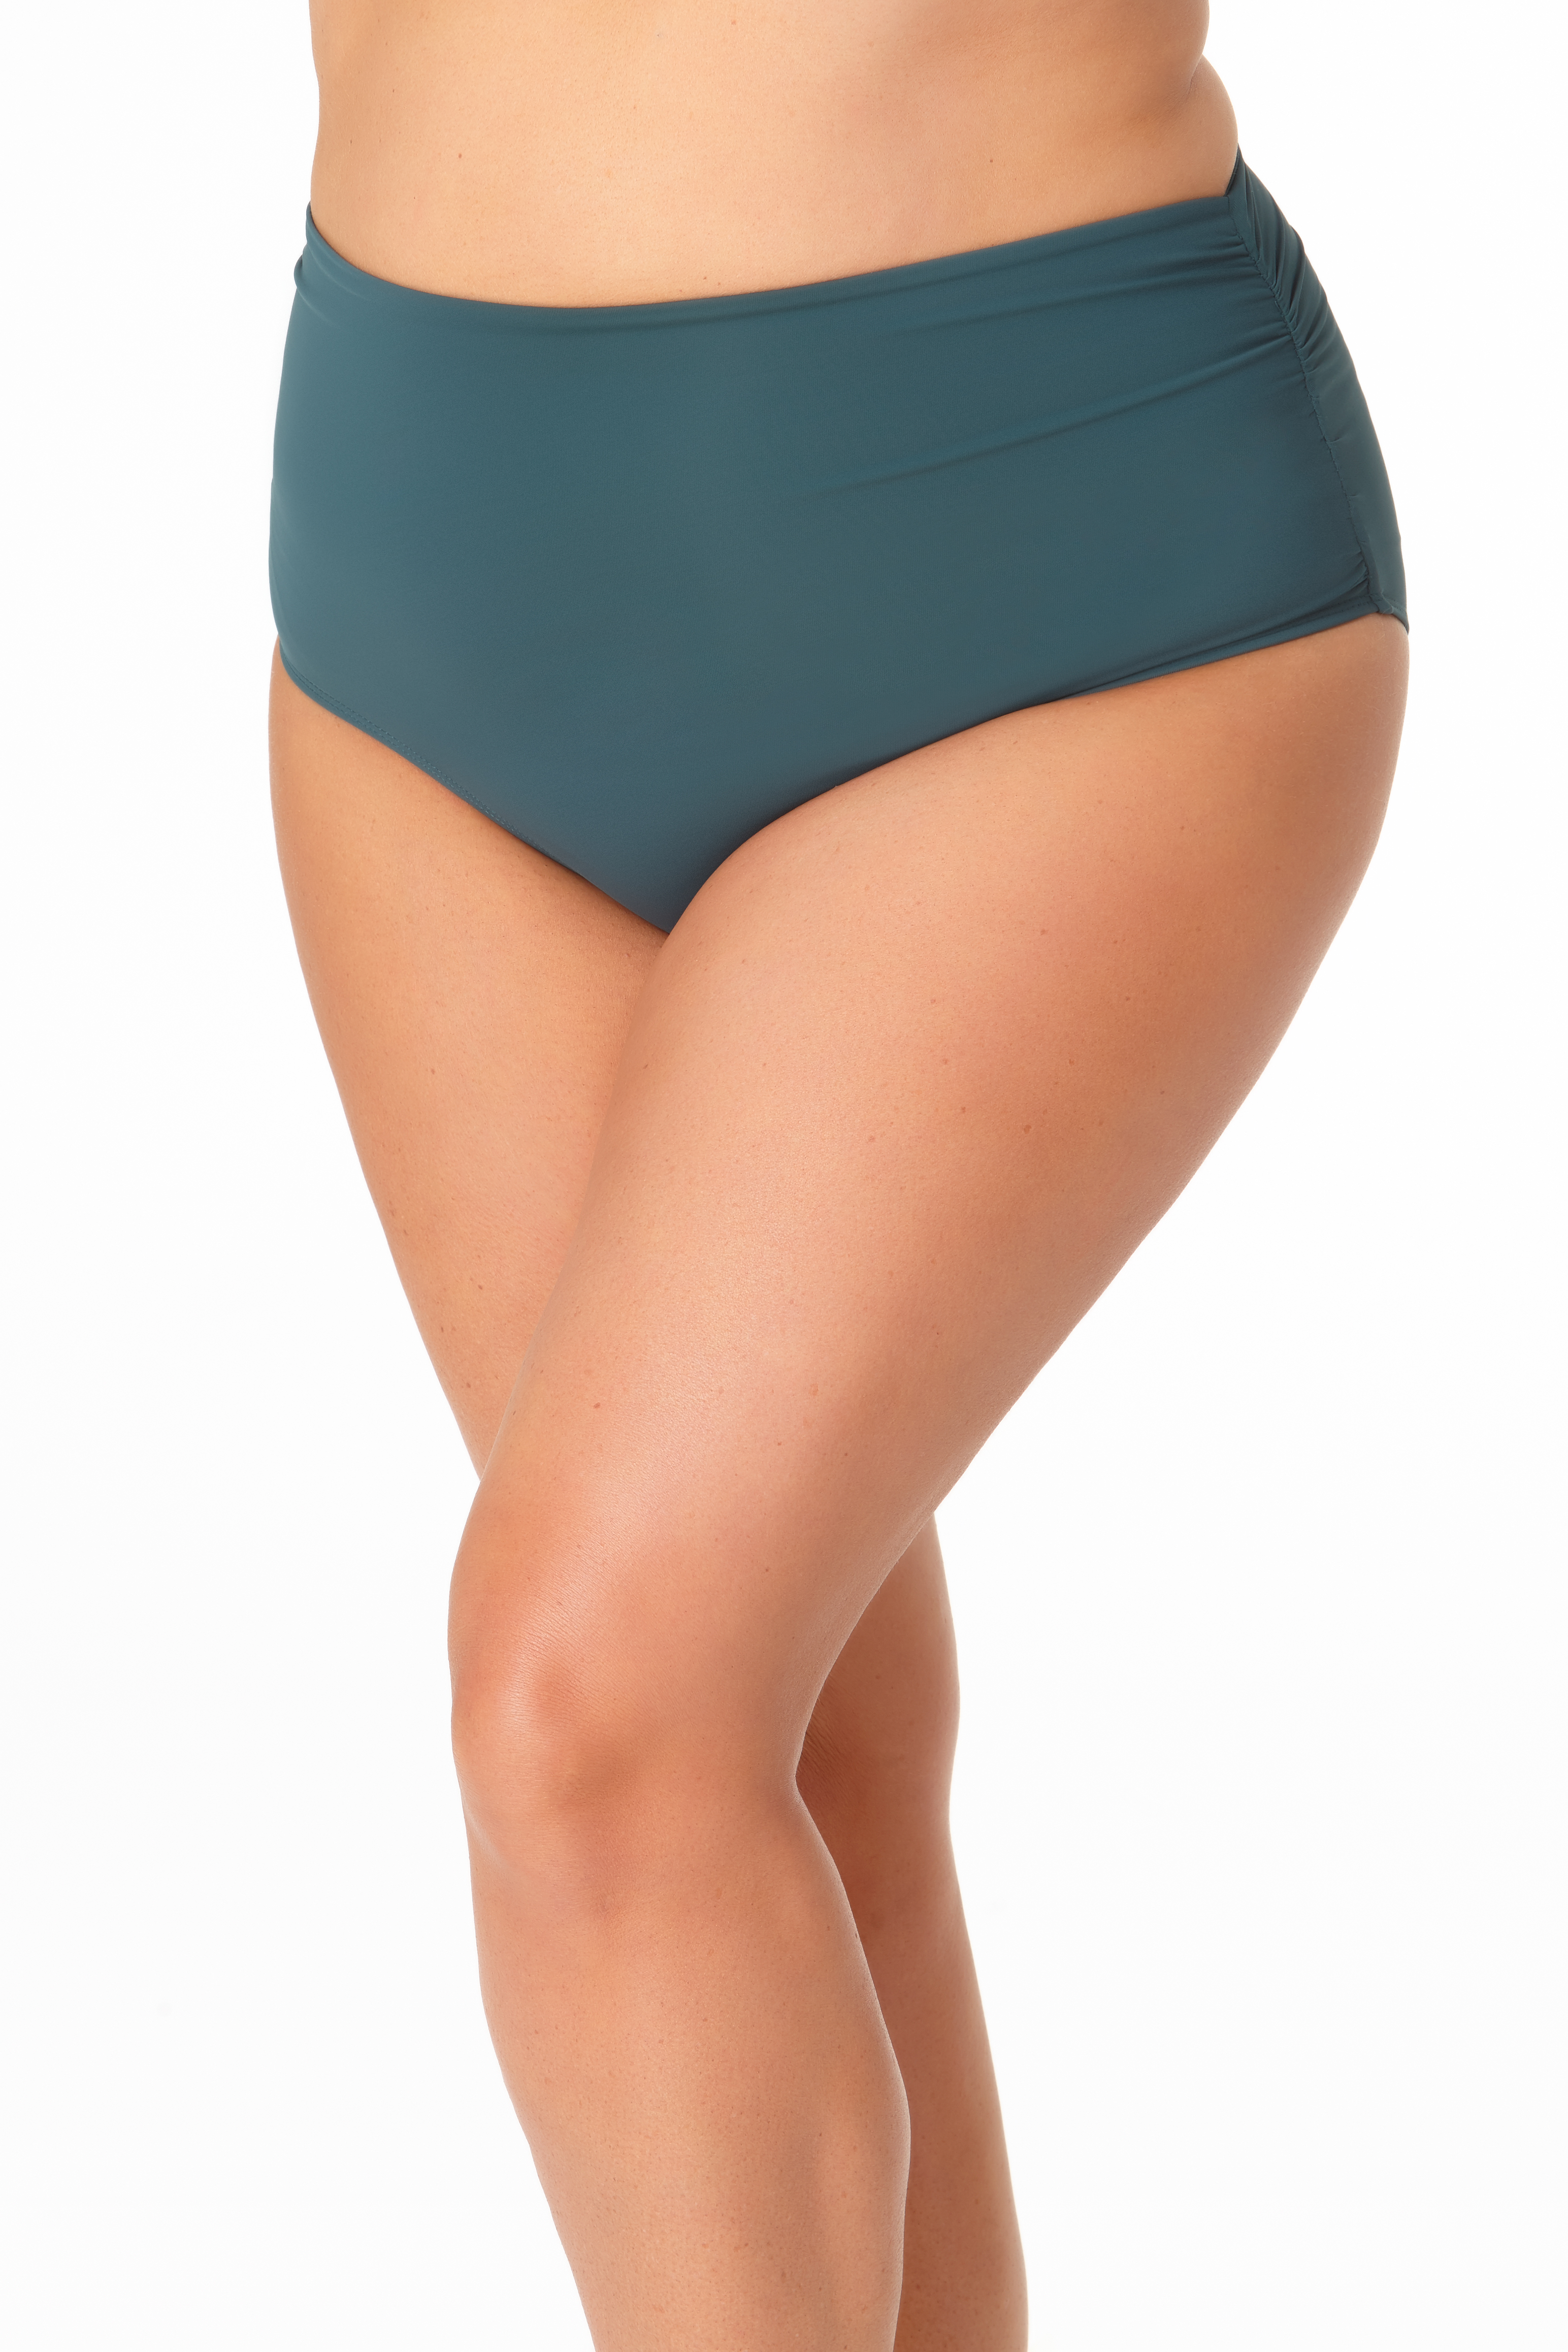 Anne Cole® Live in Color Hi Waist Shirred Swimsuit Bottom -Eucalyptus - Front